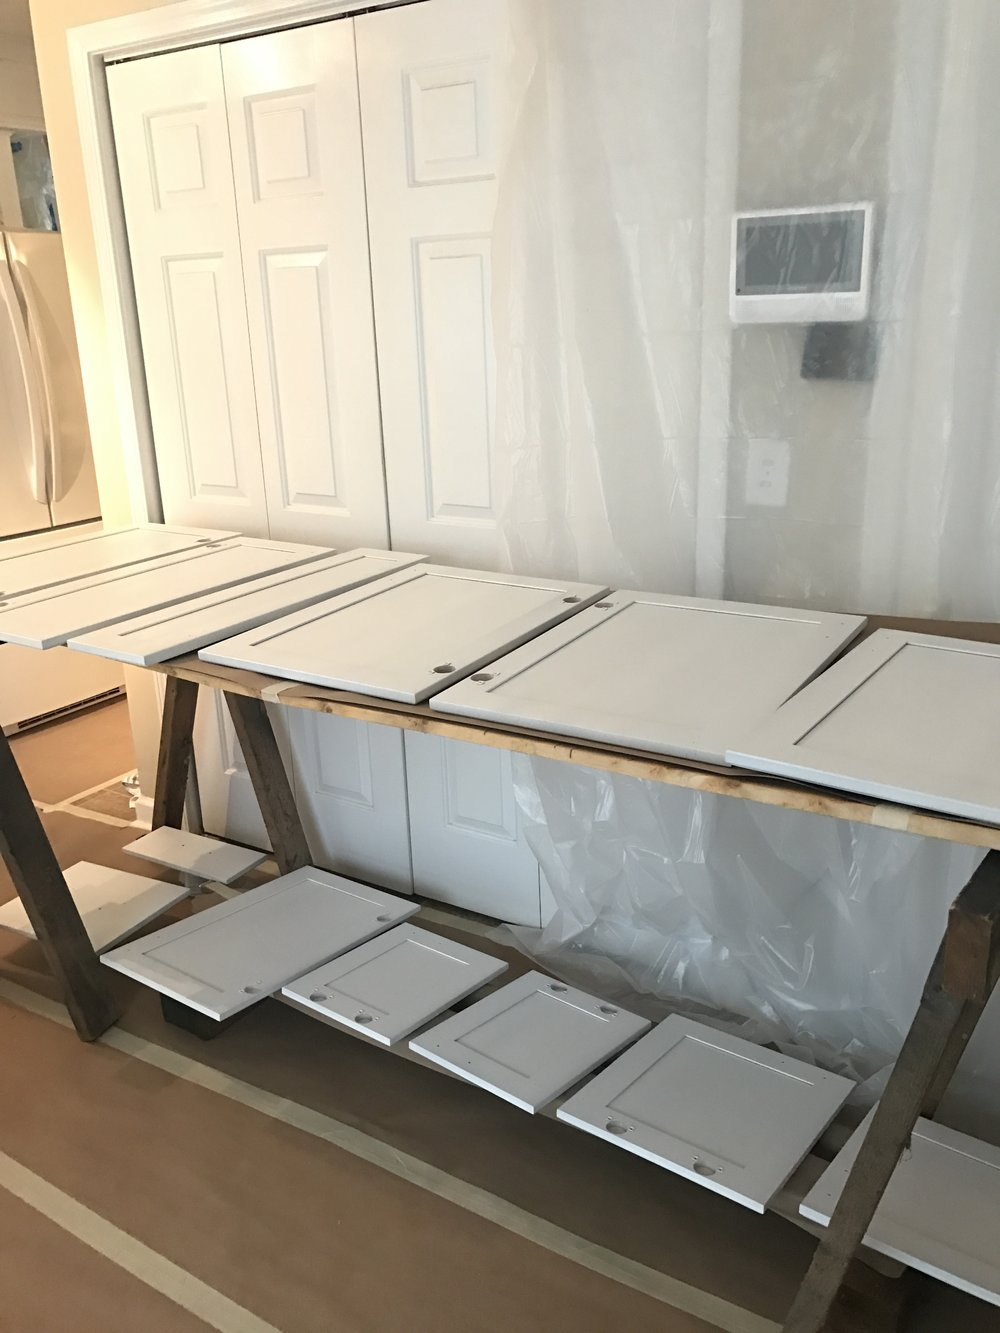 Painted_Kitchen_Cabinets_Drying_Rack.JPG